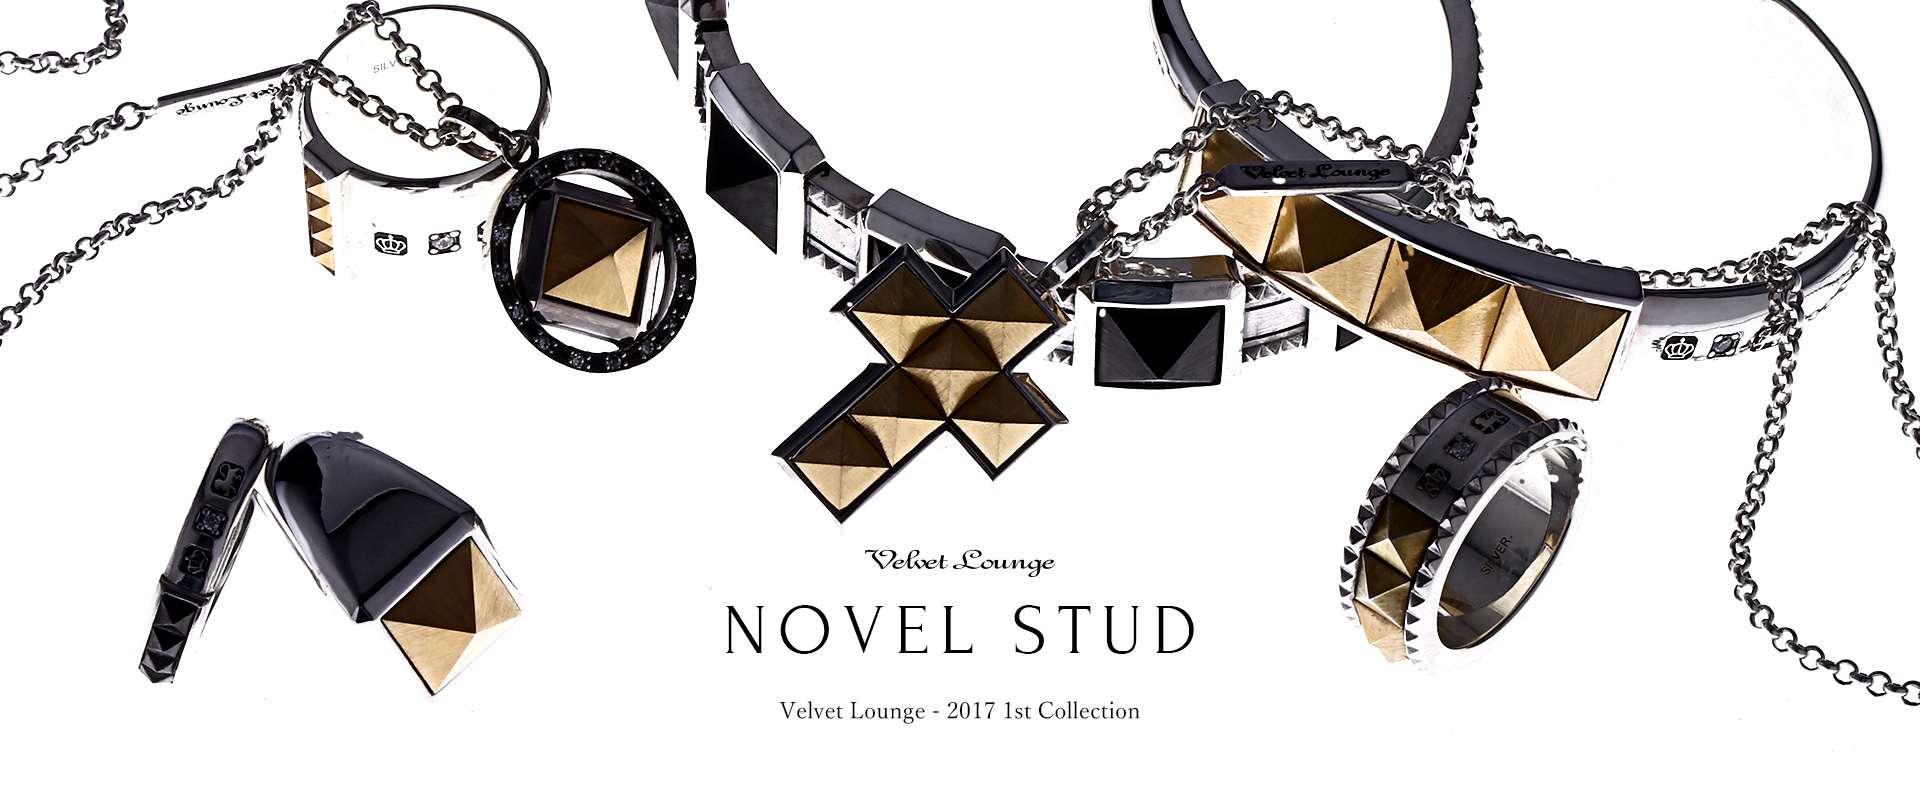 NOVEL STUD 2017 1st collection